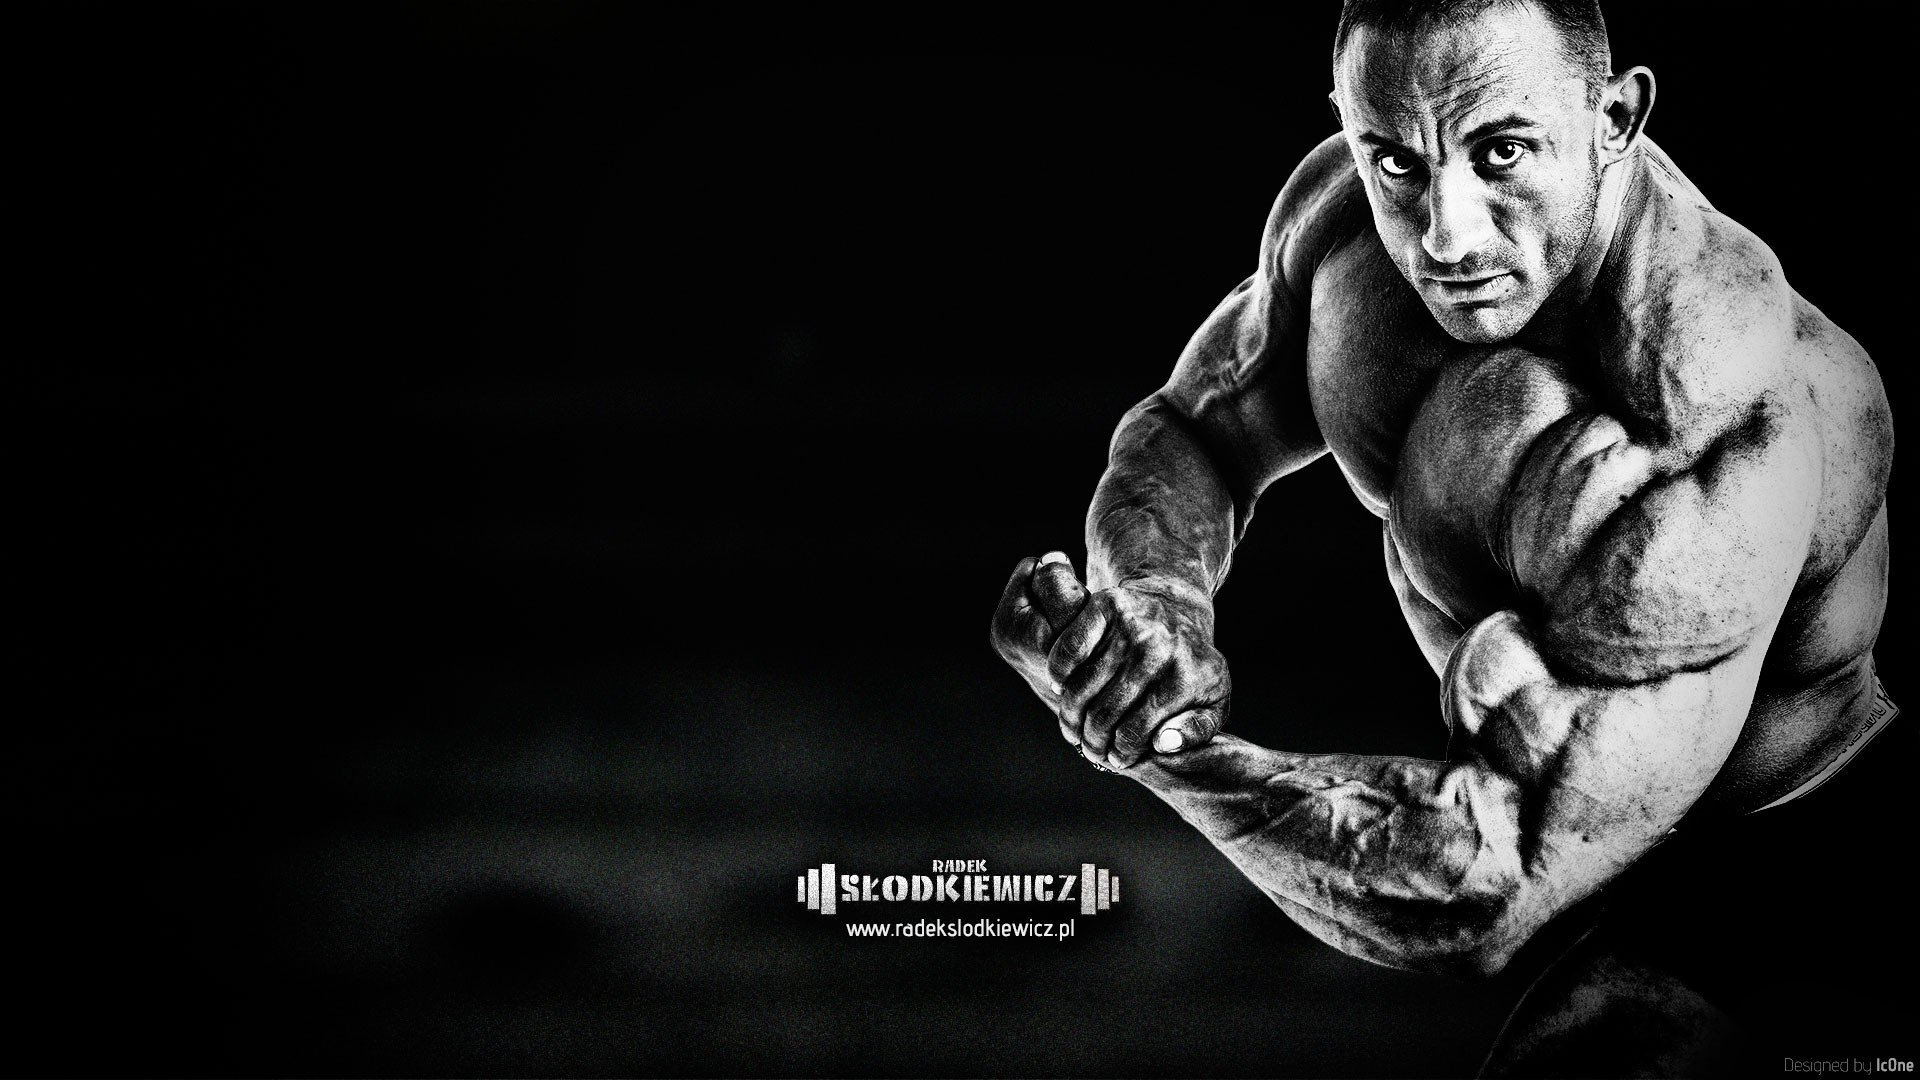 Body Building Fitness Muscle Muscles Weight Lifting Bodybuilding 21 Wallpaper